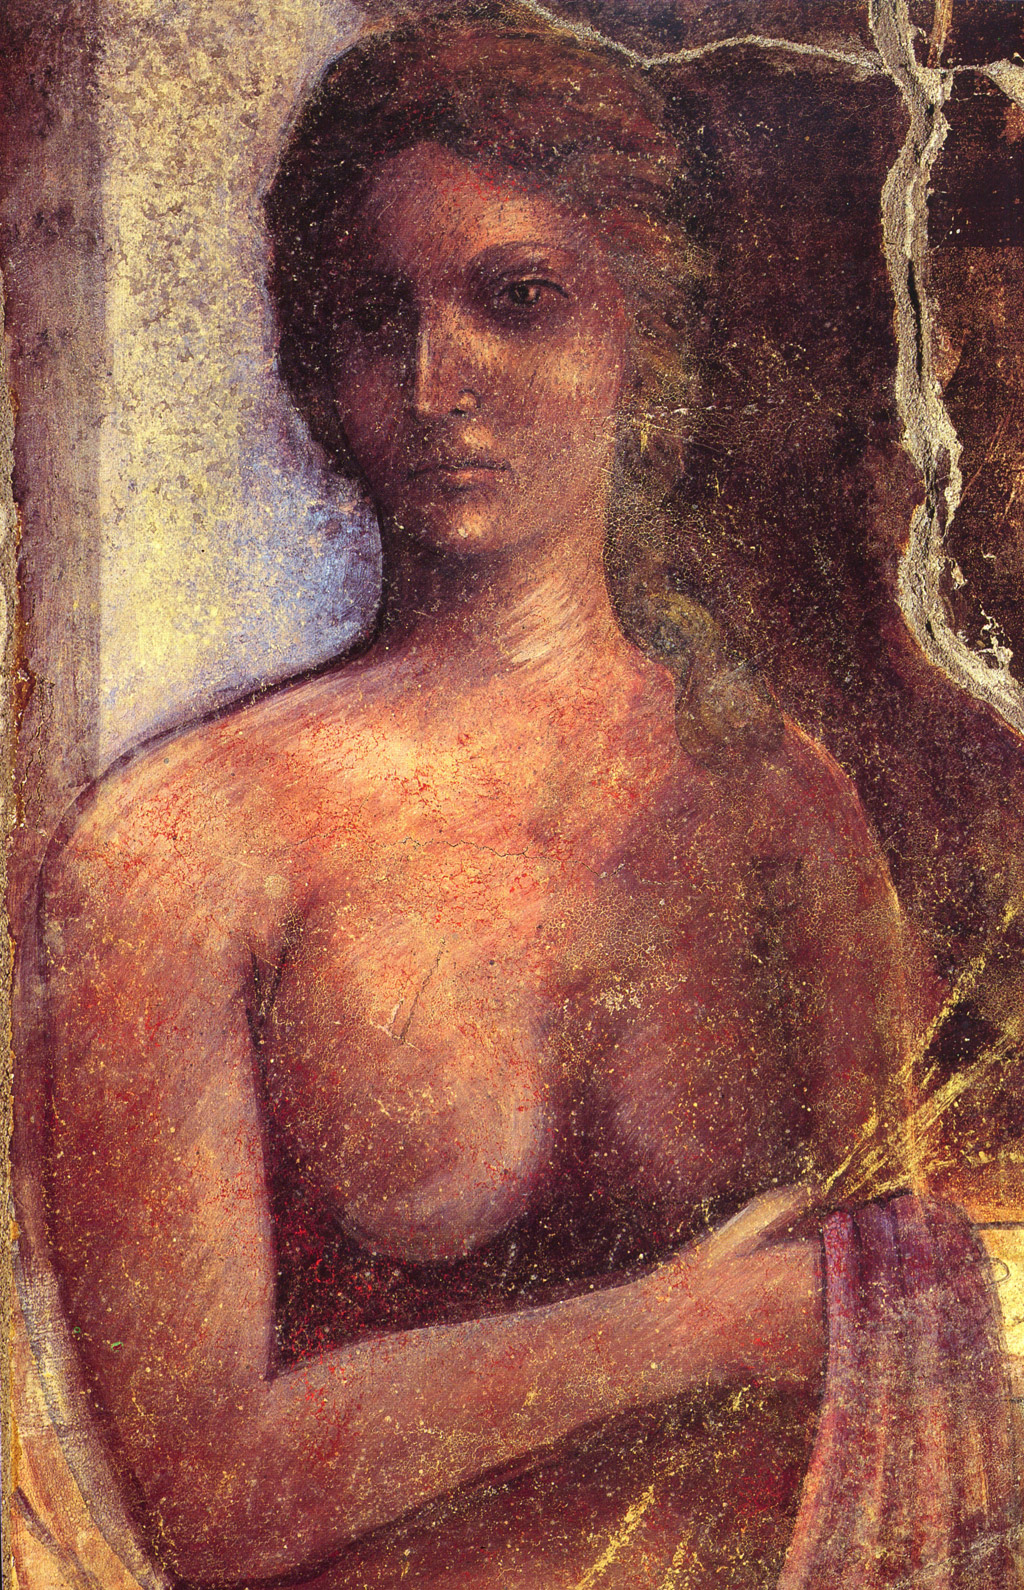 nude woman (maenad) in fresco in ancient Pompeii